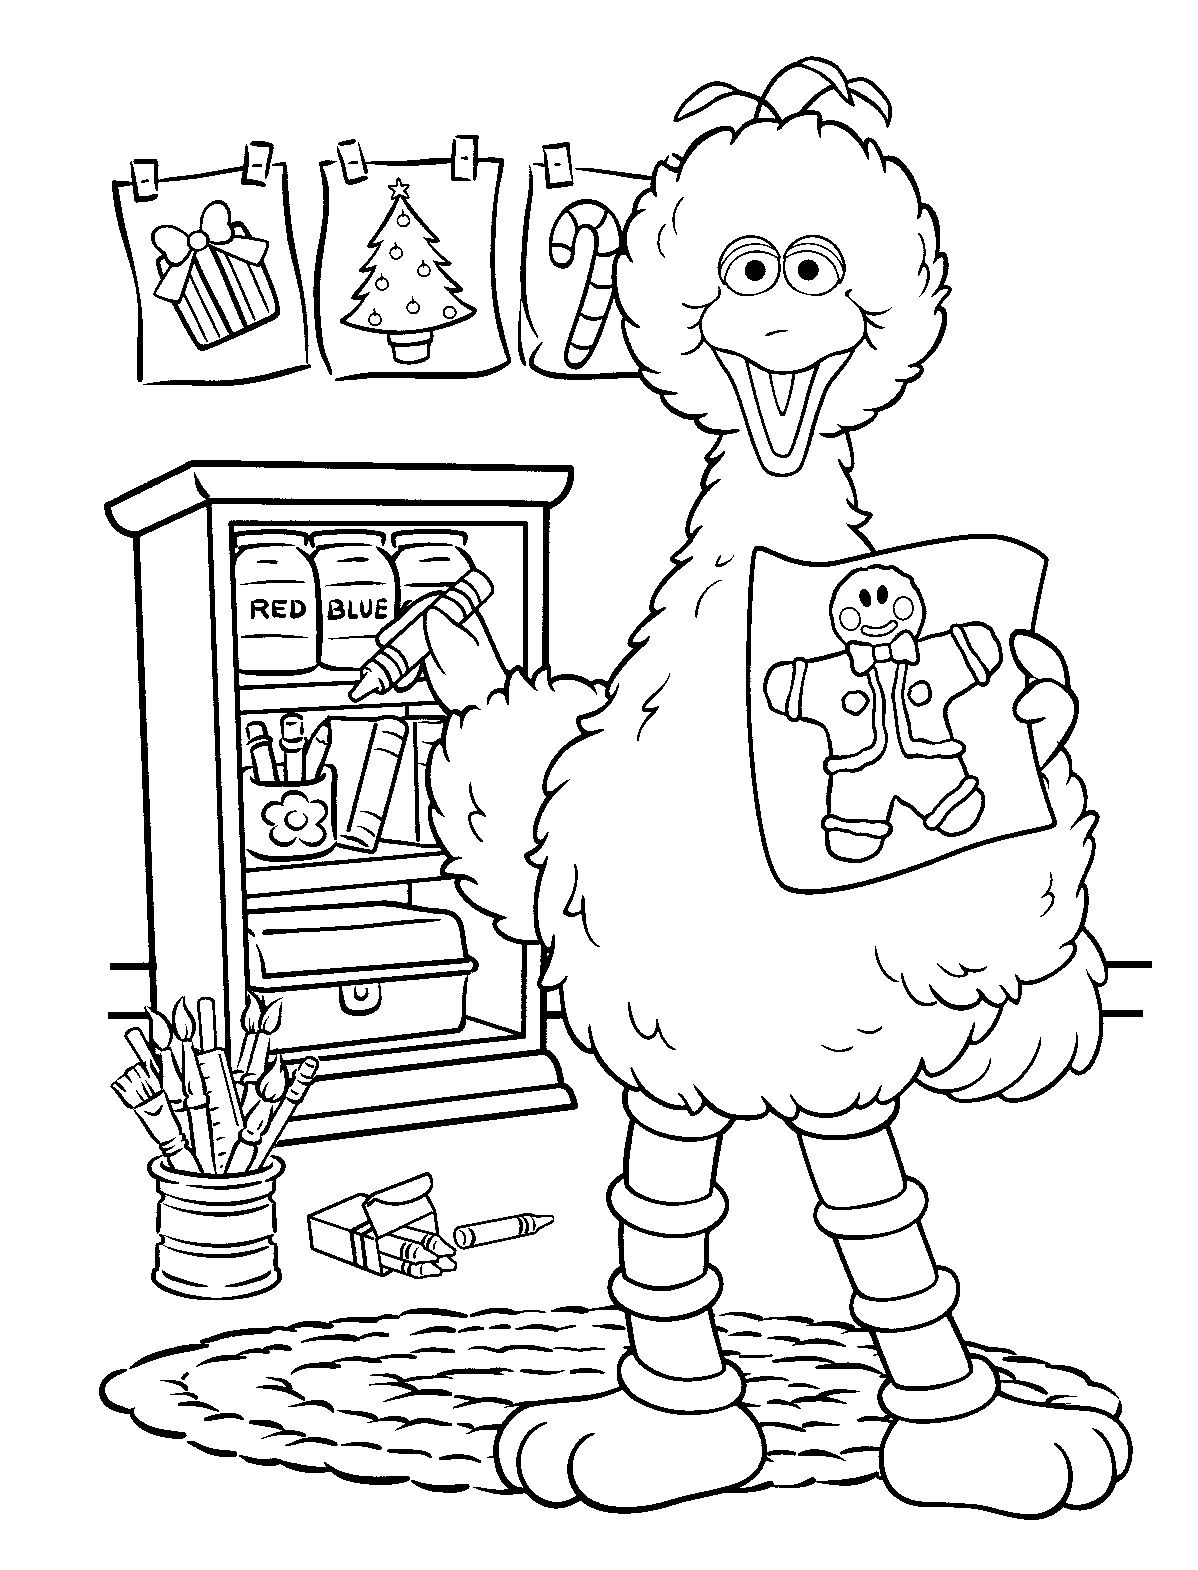 Sesame Street Christmas Coloring Pages At Getcolorings